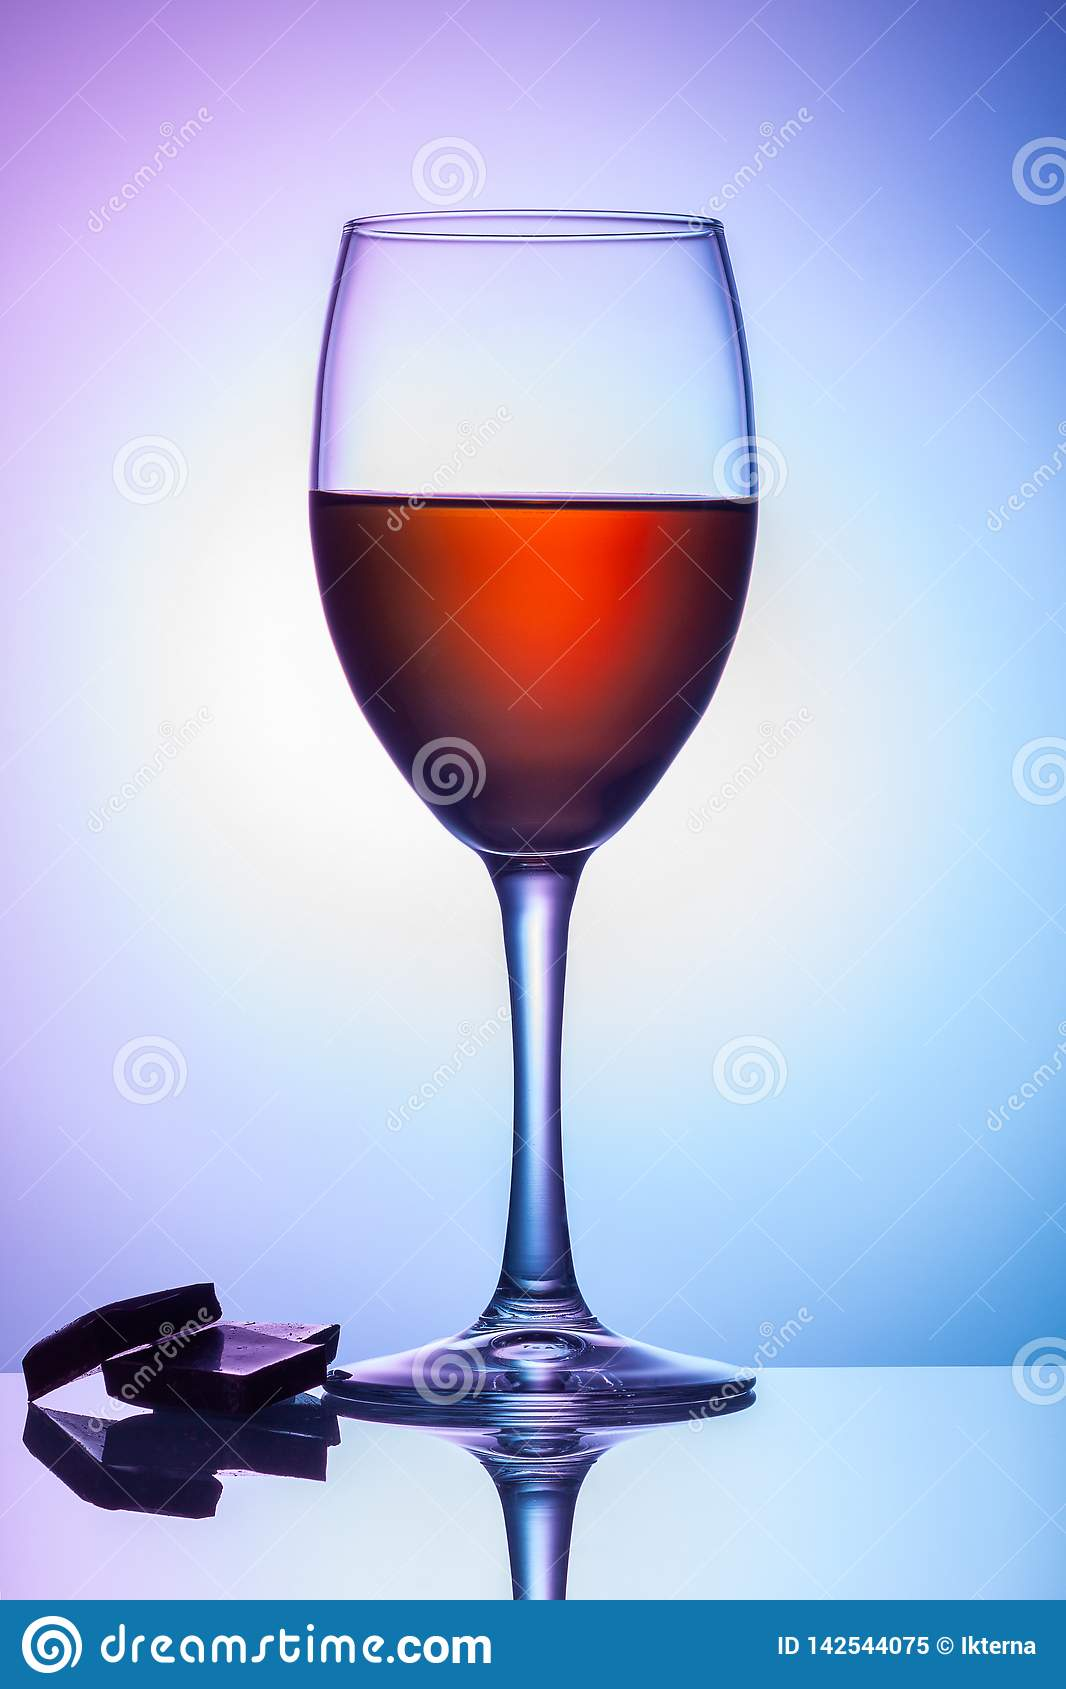 On the table is a glass of wine on a colored background